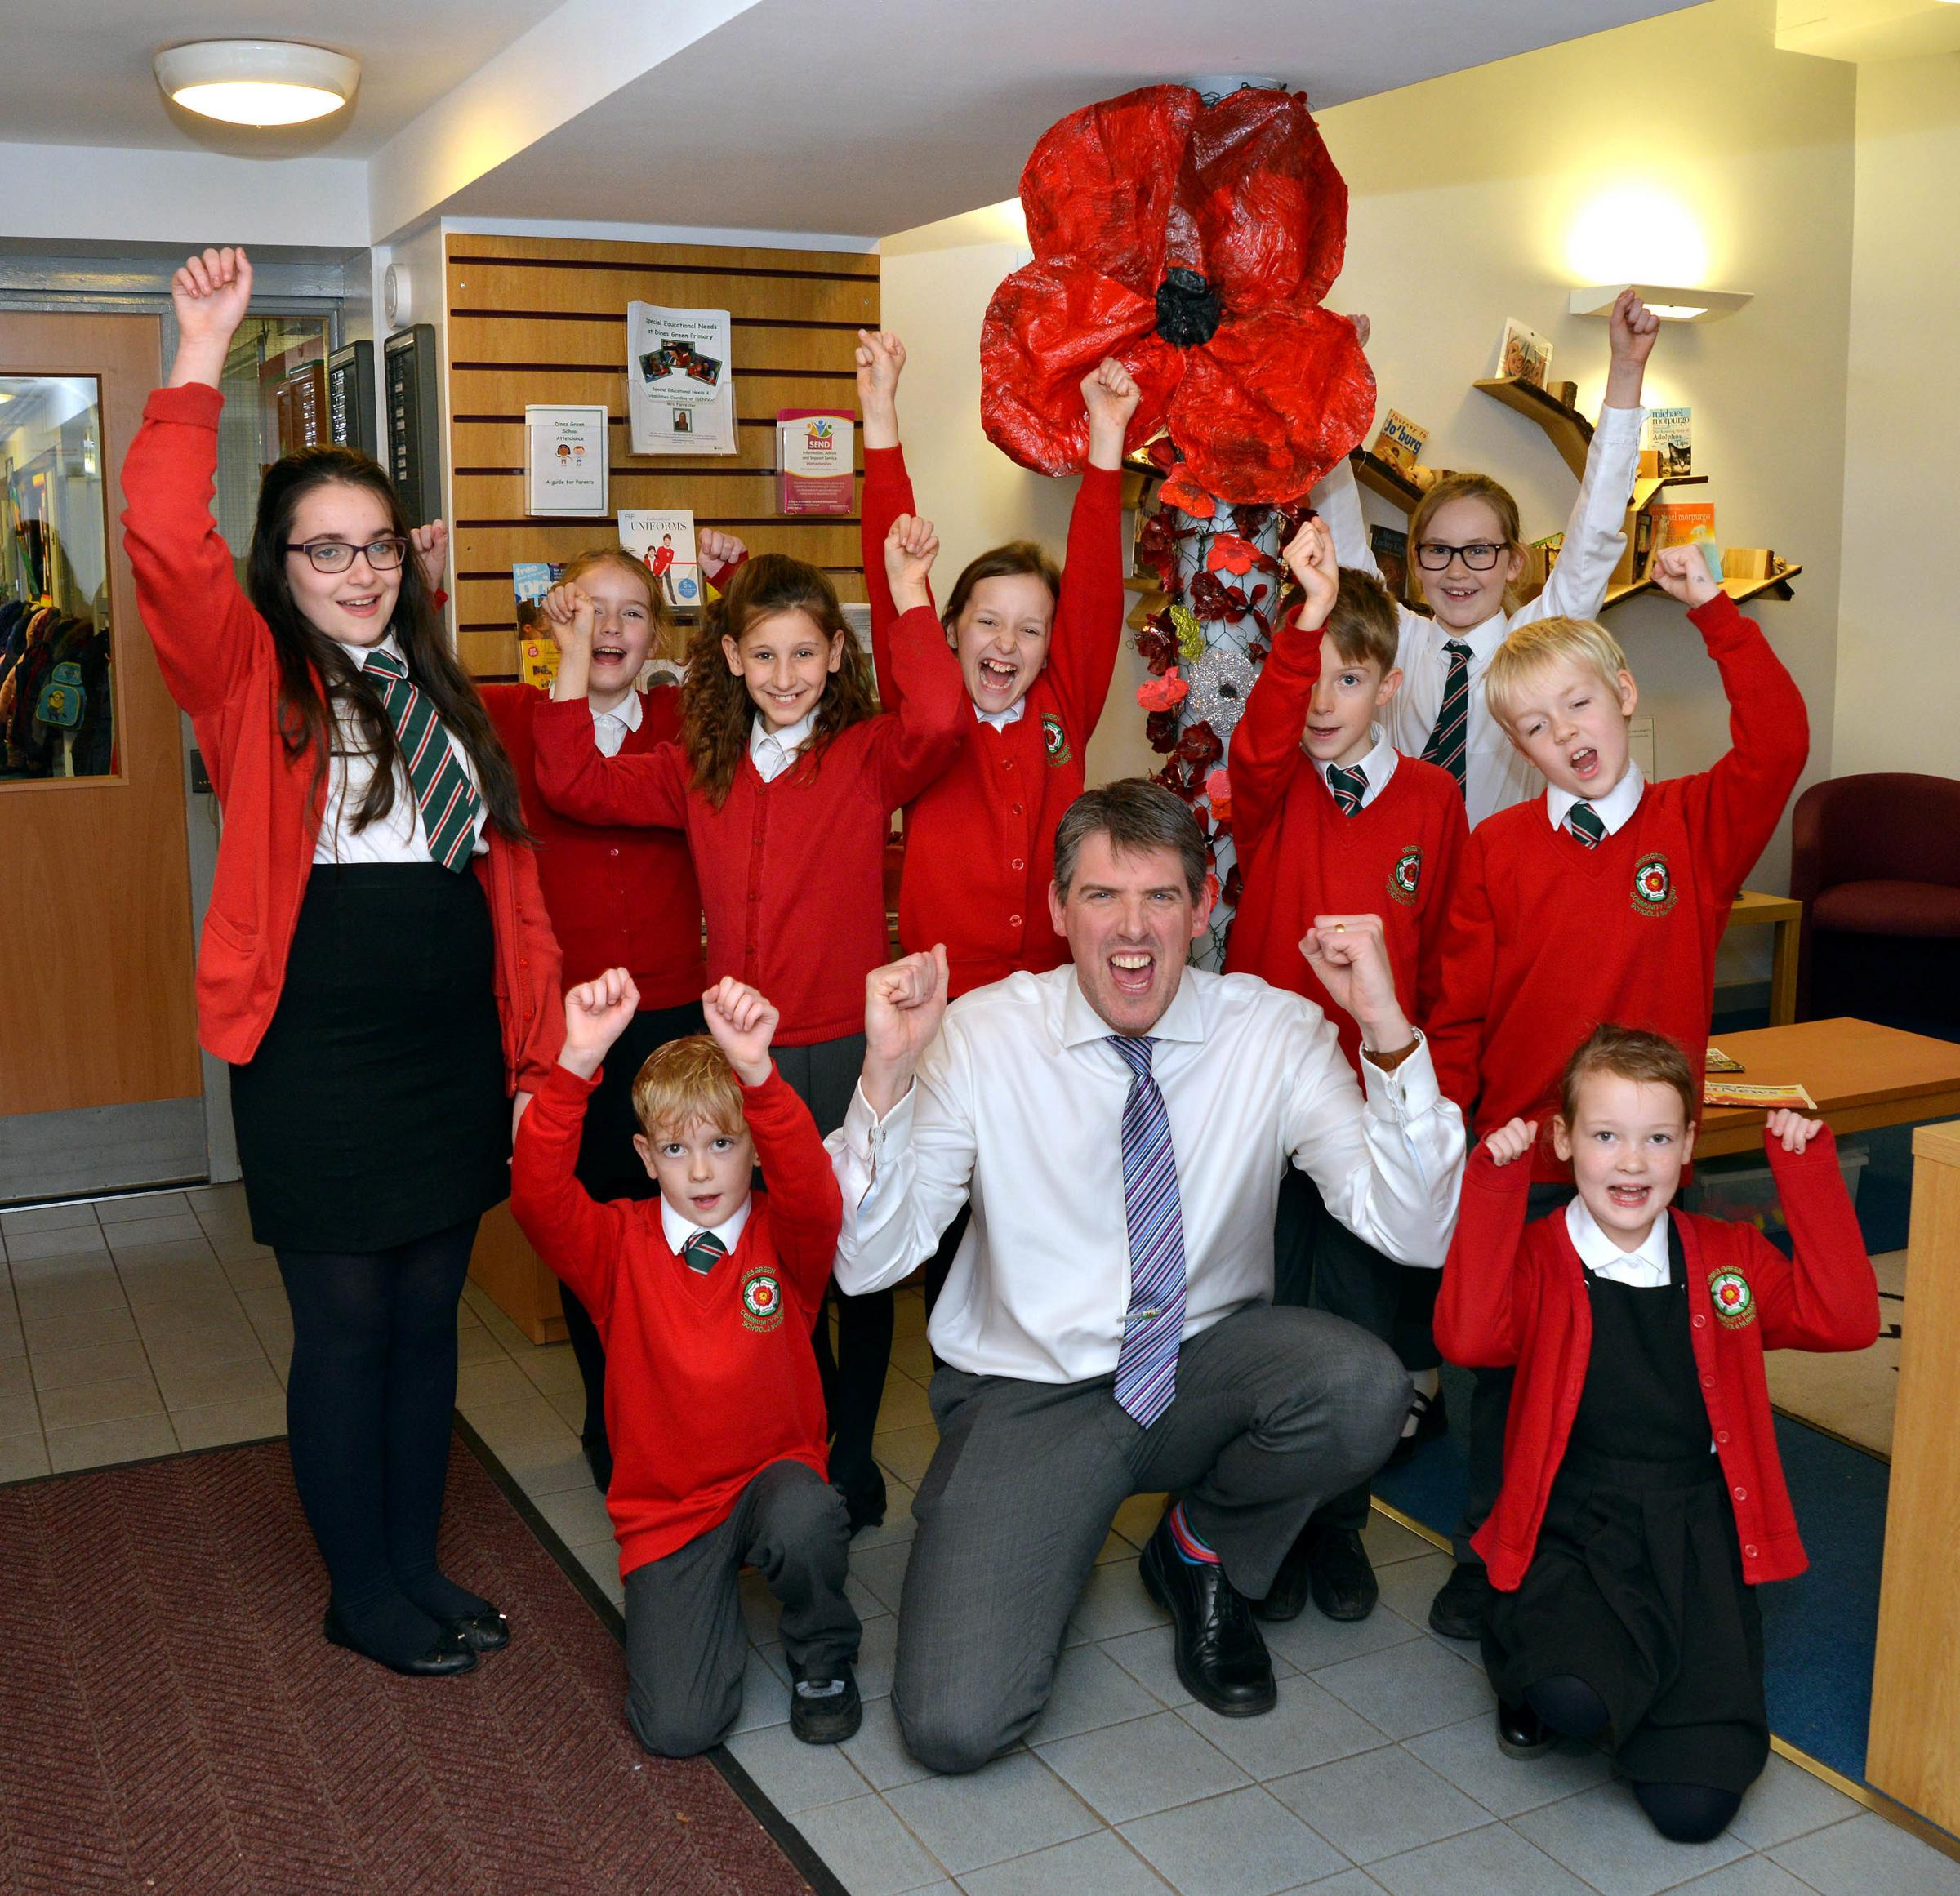 HAPPY: Dines Green Community Academy has been nominated for Primary School of the Year Award